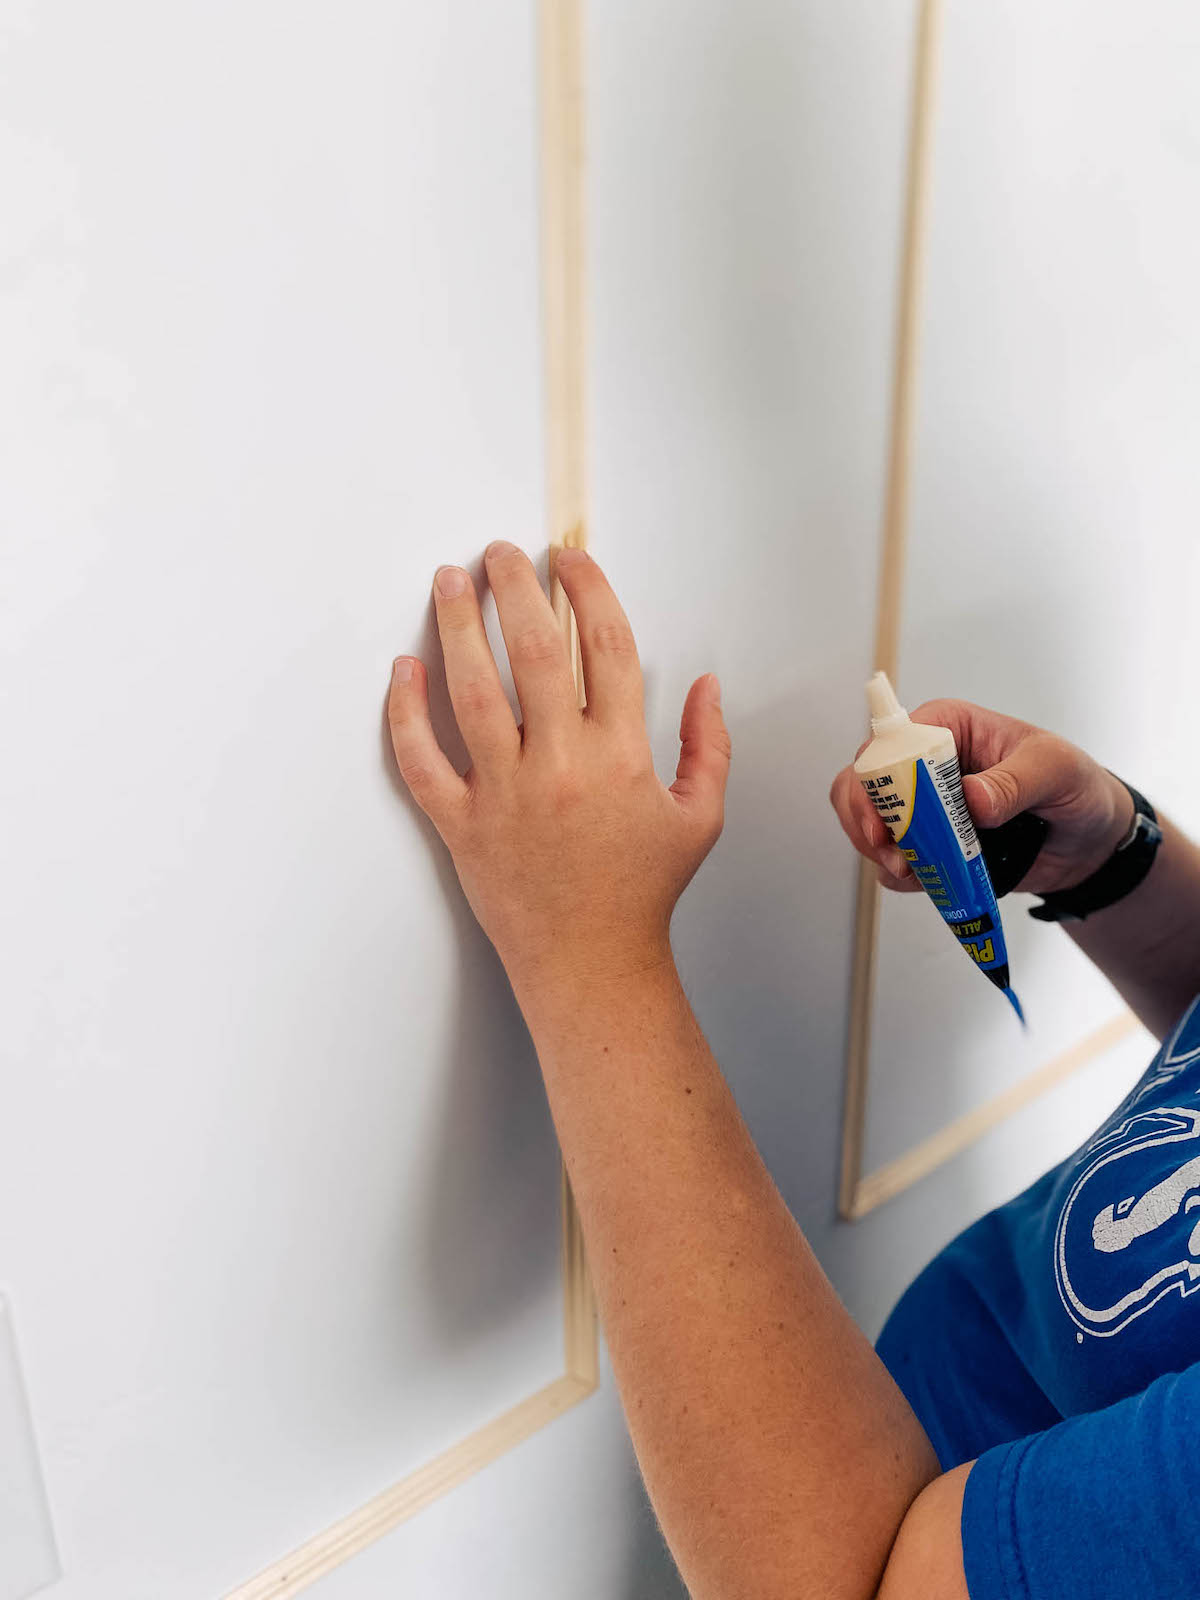 Woman wearing blue shirt applies wood filler to picture frame moulding.